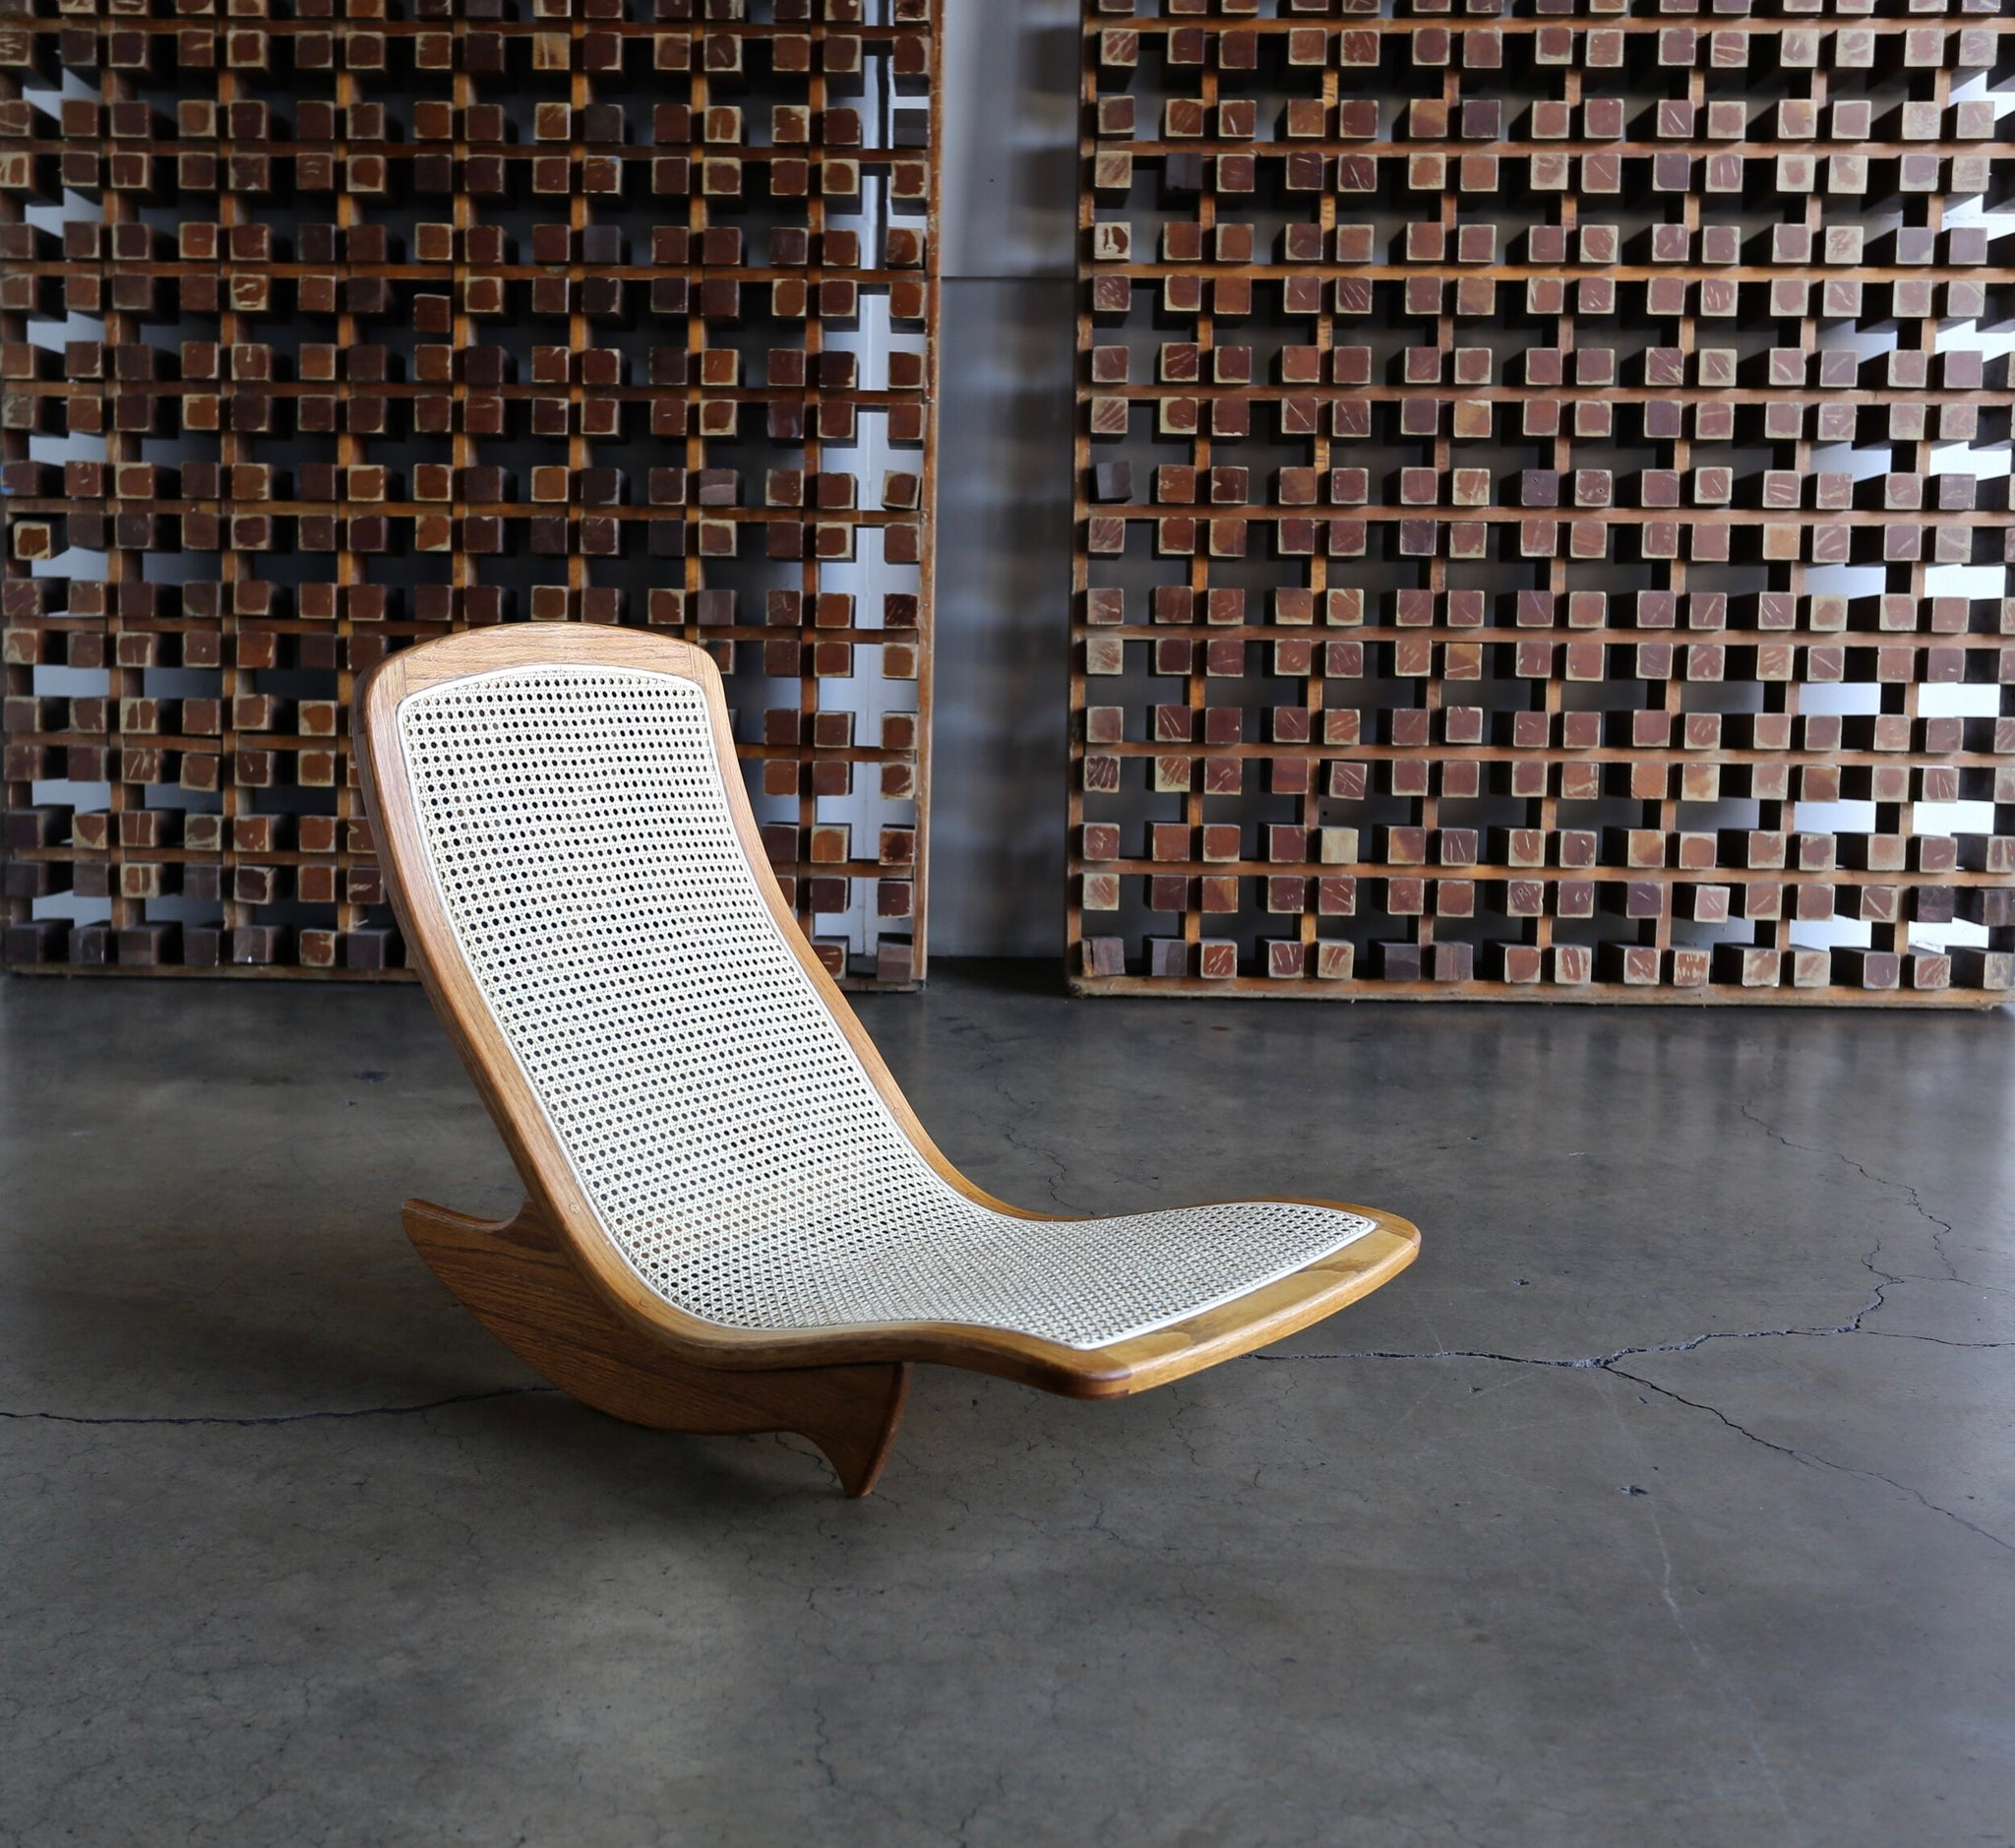 = SOLD = Steven Rieman Handcrafted Low Rocker, 1976